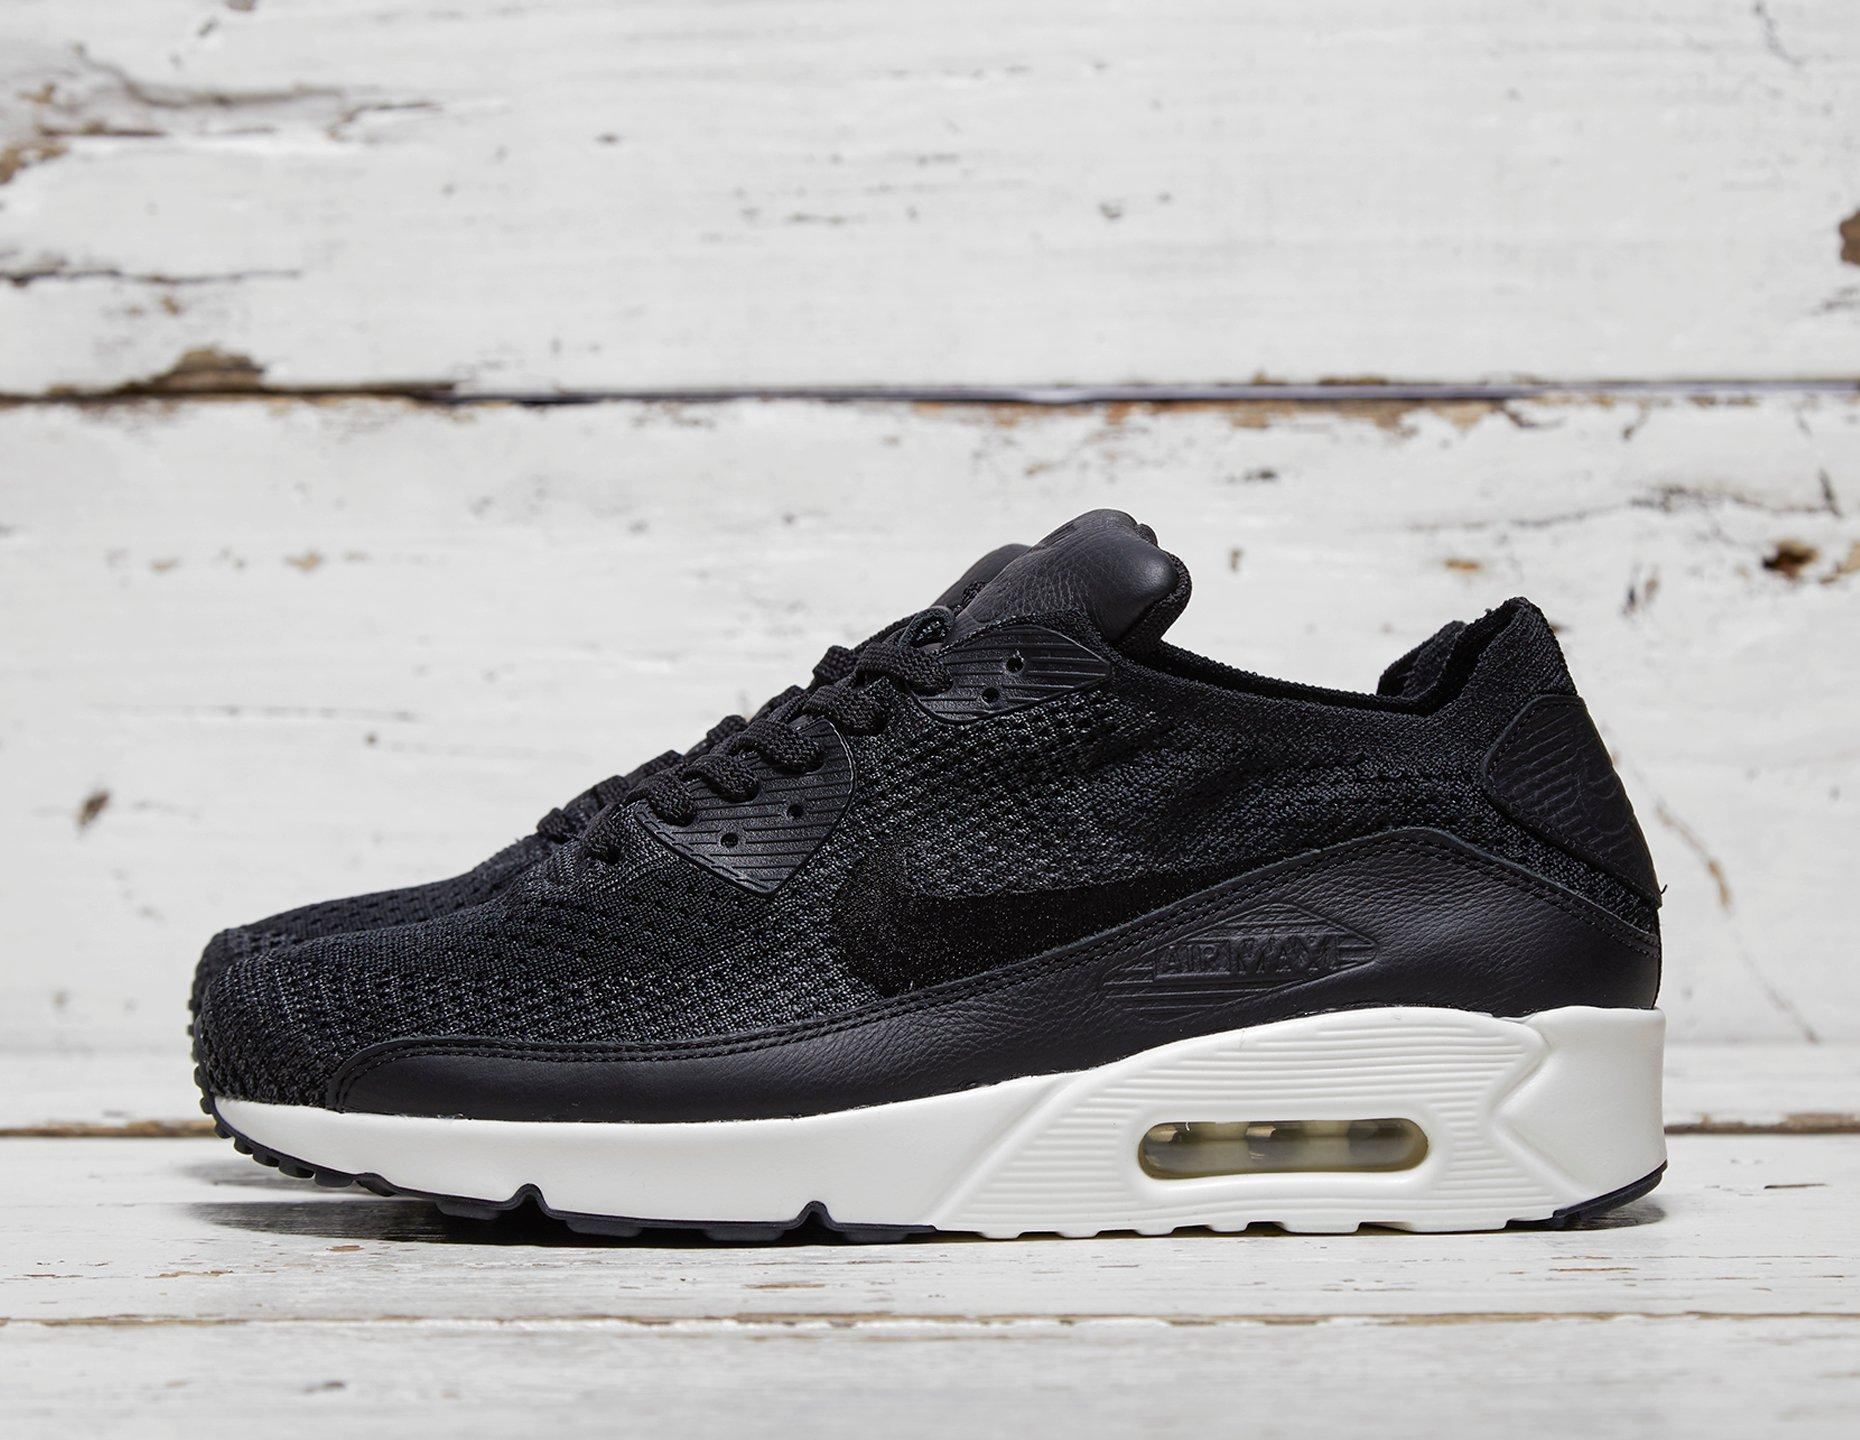 100% authentic 7ddc3 332ce A NikeLab Air Max 90 Flyknit Has Emerged - WearTesters